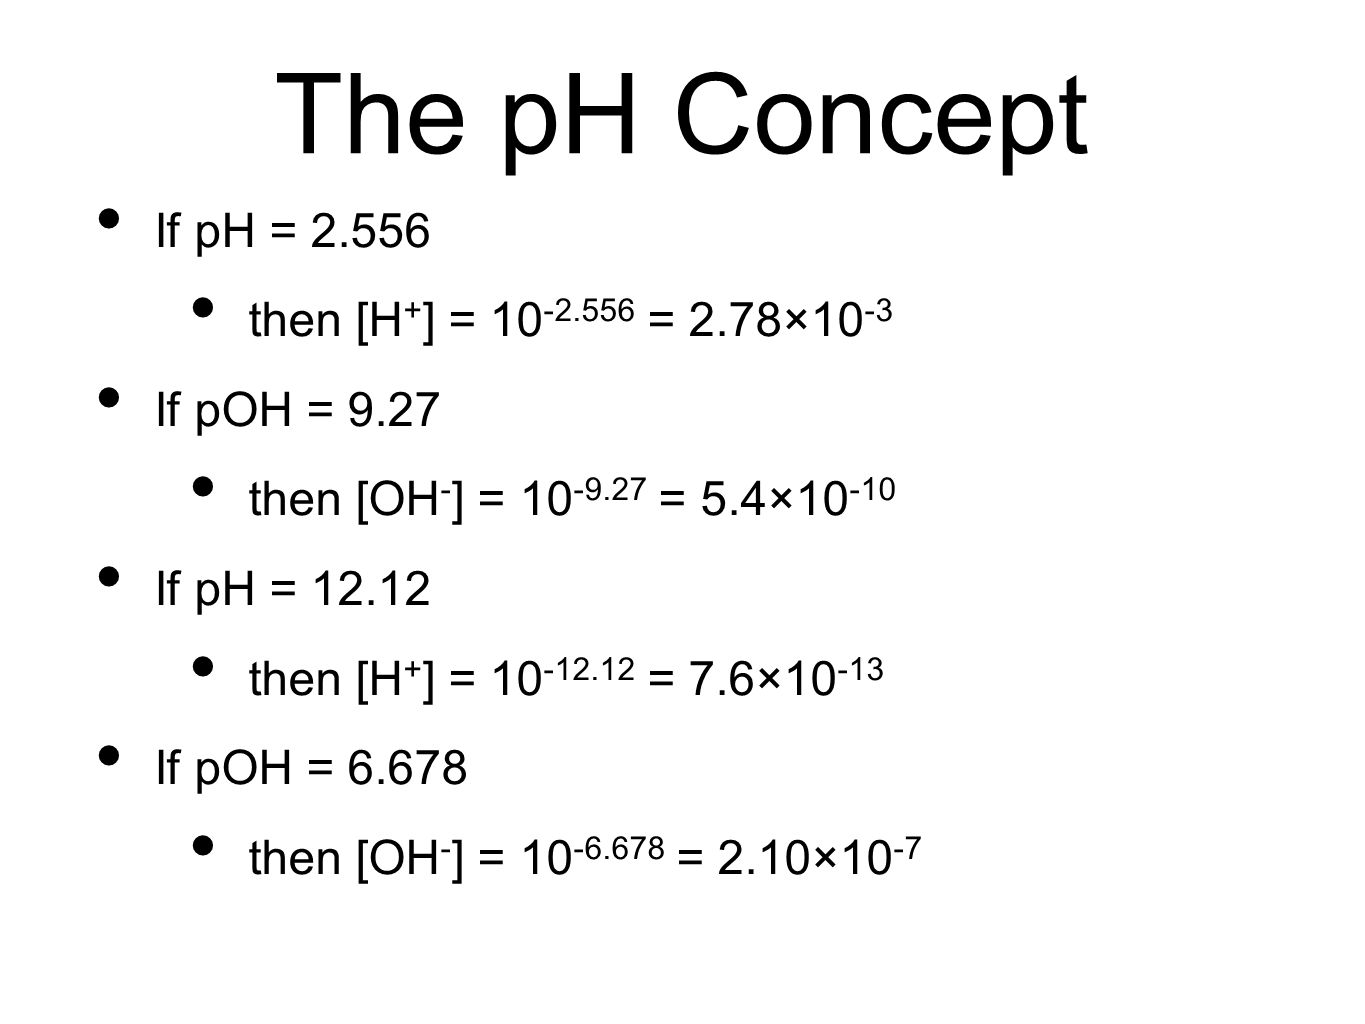 The pH Concept If pH = 2.556 then [H + ] = 10 -2.556 = 2.78×10 -3 If pOH = 9.27 then [OH - ] = 10 -9.27 = 5.4×10 -10 If pH = 12.12 then [H + ] = 10 -12.12 = 7.6×10 -13 If pOH = 6.678 then [OH - ] = 10 -6.678 = 2.10×10 -7